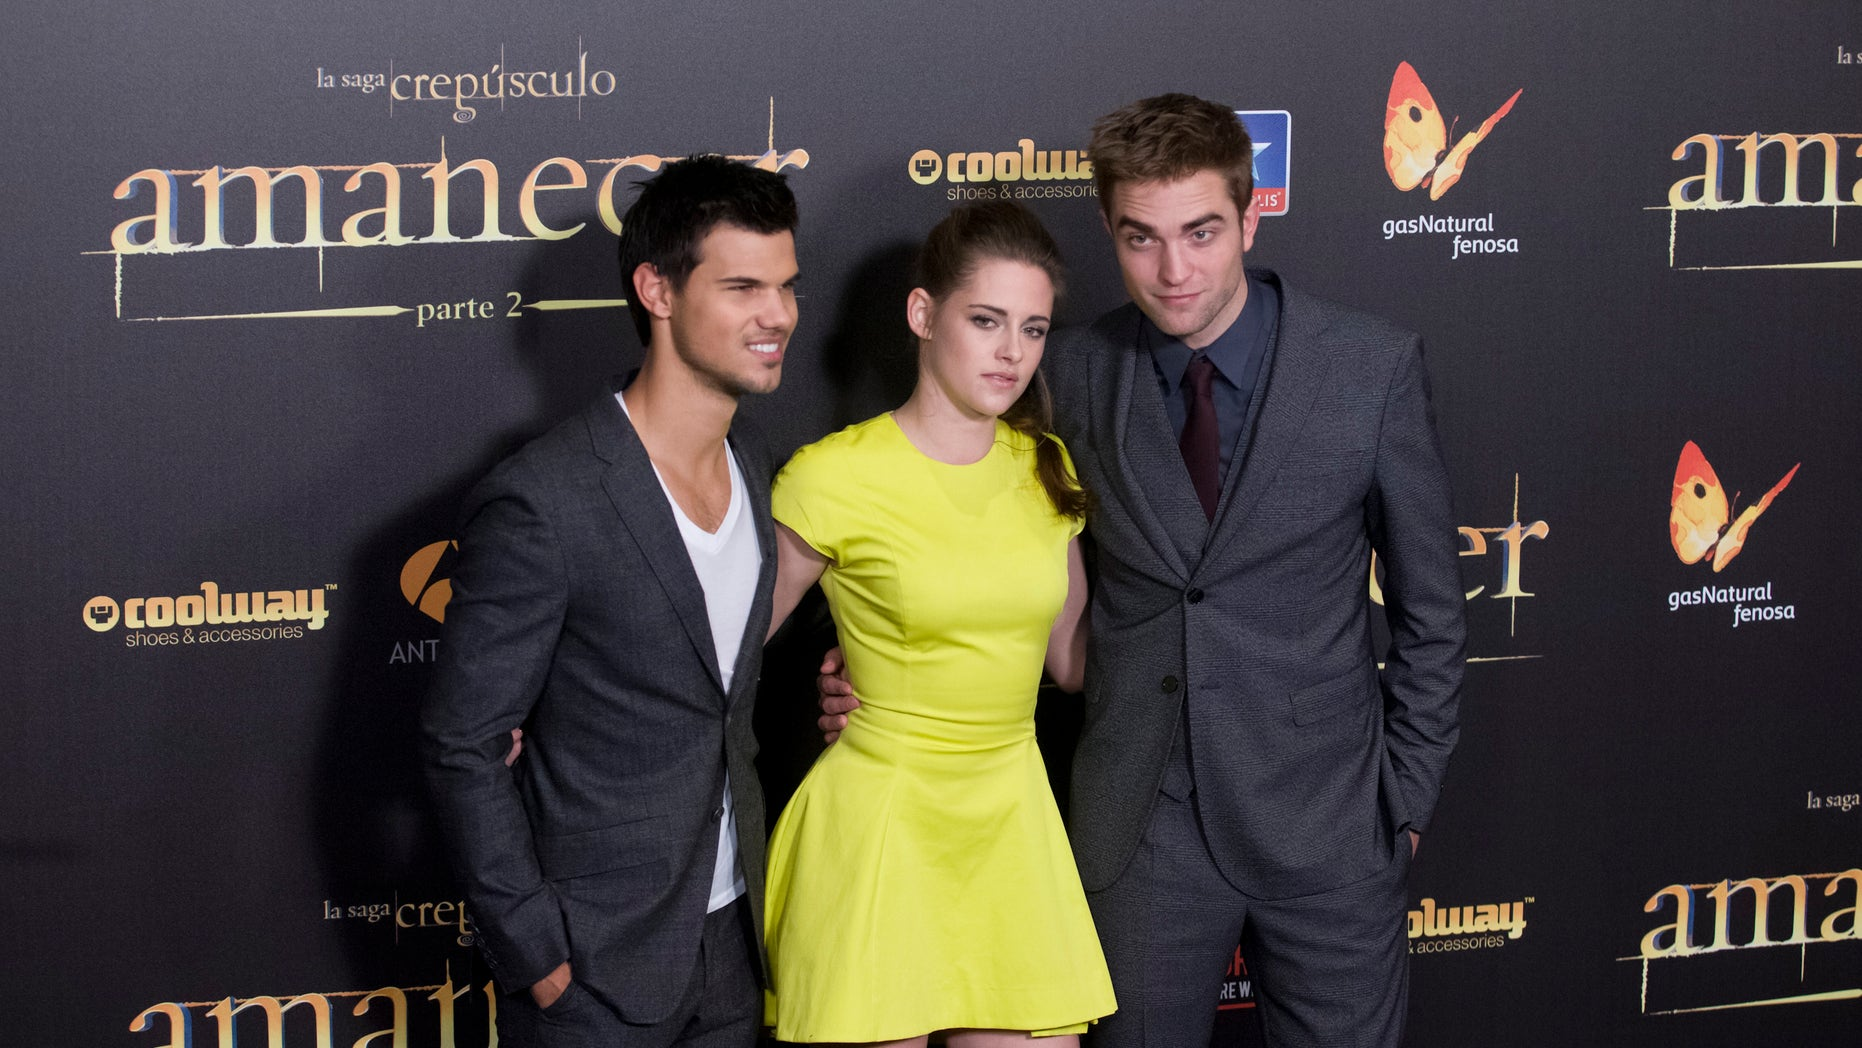 """American actor Taylor Lautner, left American actress Kristen Stewart, center and British actor Robert Pattinson pose during a photo call at the Spanish premiere of the film """"The Twilight Saga: Breaking Dawn-Part 2"""" in Kinepolis Cinema in Madrid, Spain, Thursday, Nov. 15, 2012. ( AP Photo/Gabriel Pecot)"""